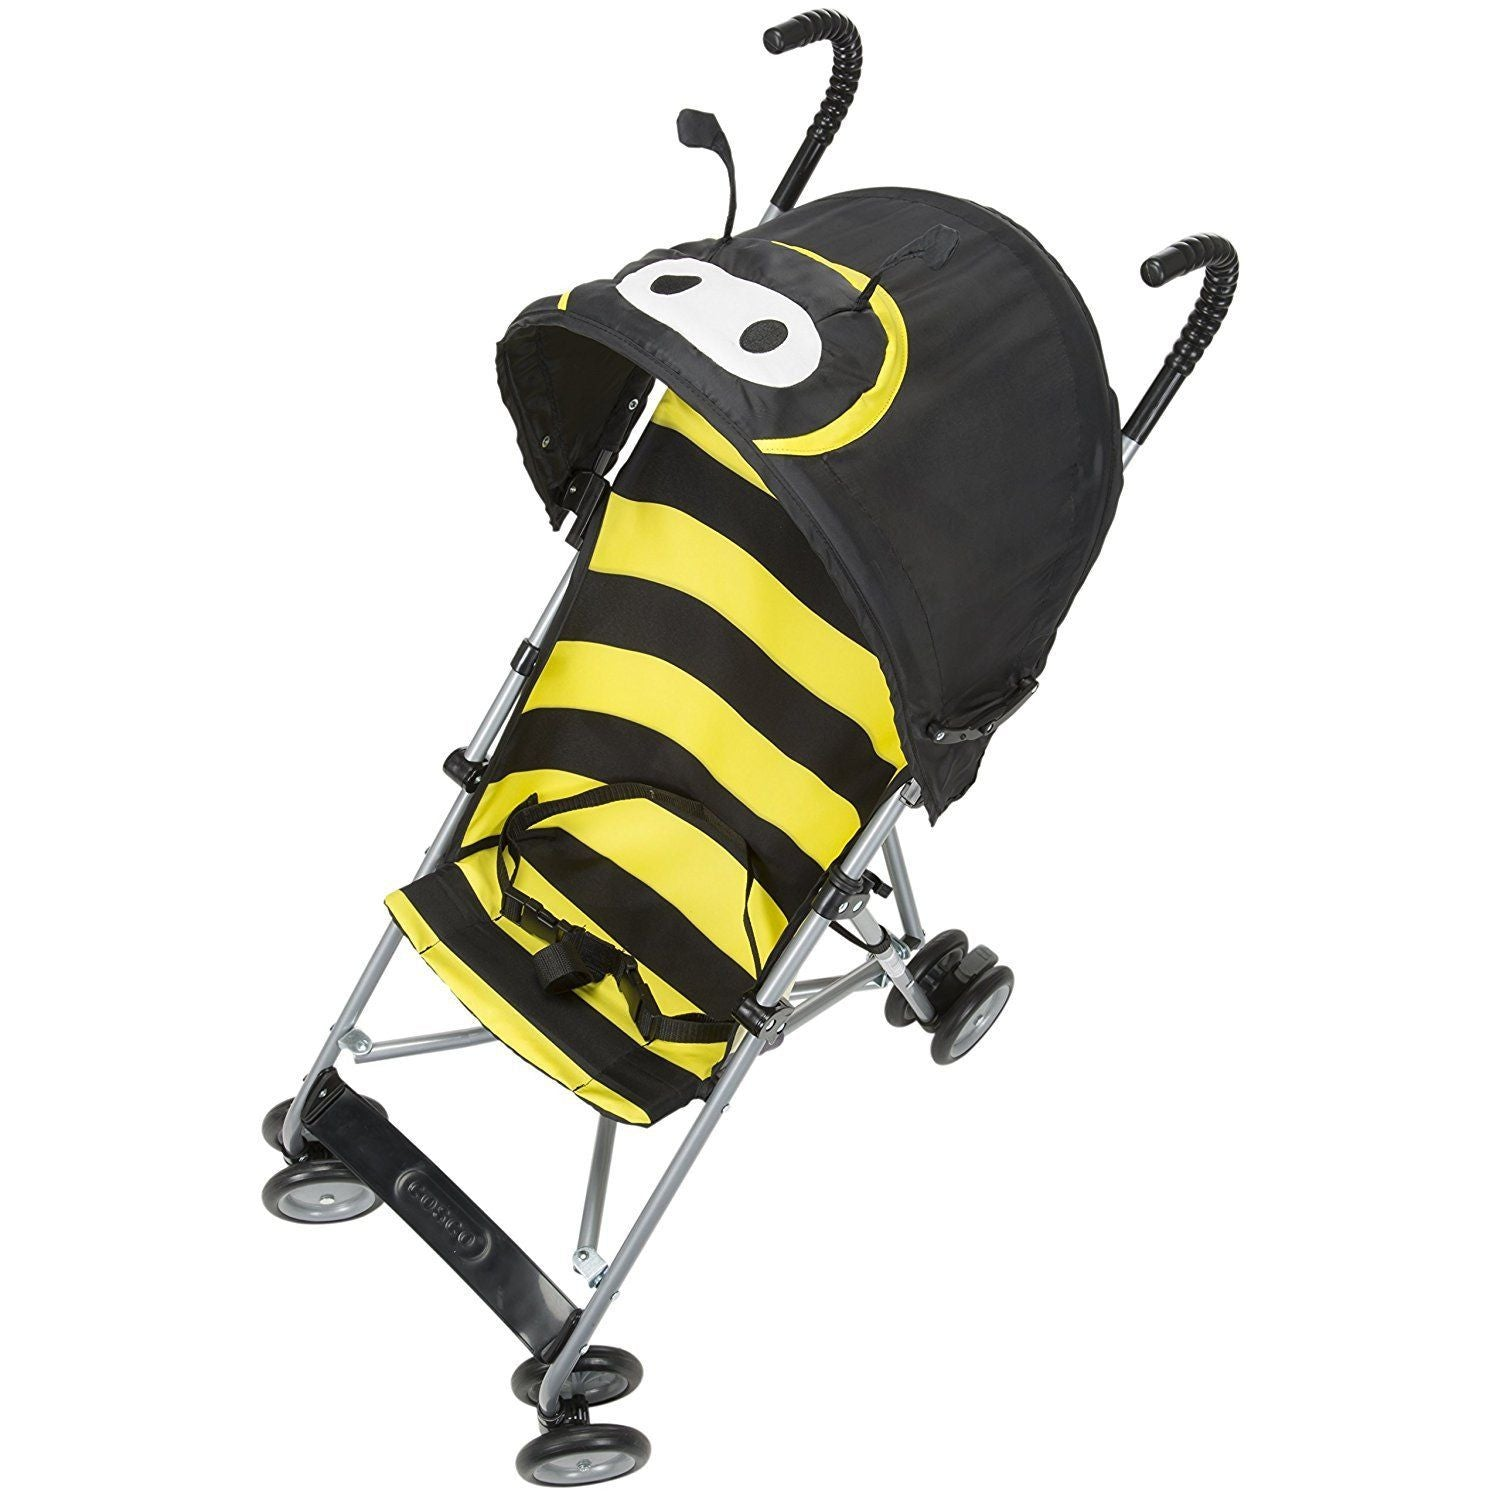 Cosco Black Umbrella Stroller, Yellow Bumble Bee - Grade 1